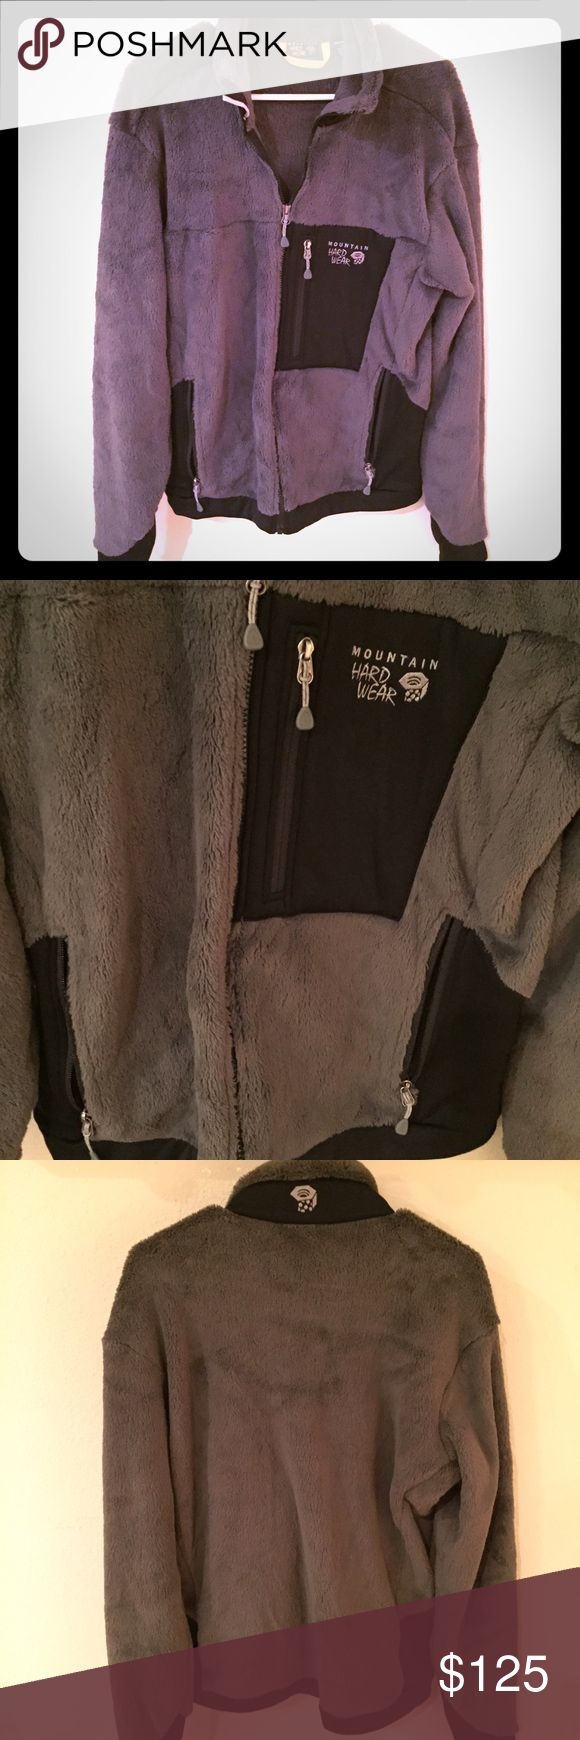 Never Worn Mountain Hard Ware fleece jacket Grey men's fleece Mountain Hard Ware jacket. In great condition and has never been worn! Mountain Hard Wear Jackets & Coats Performance Jackets